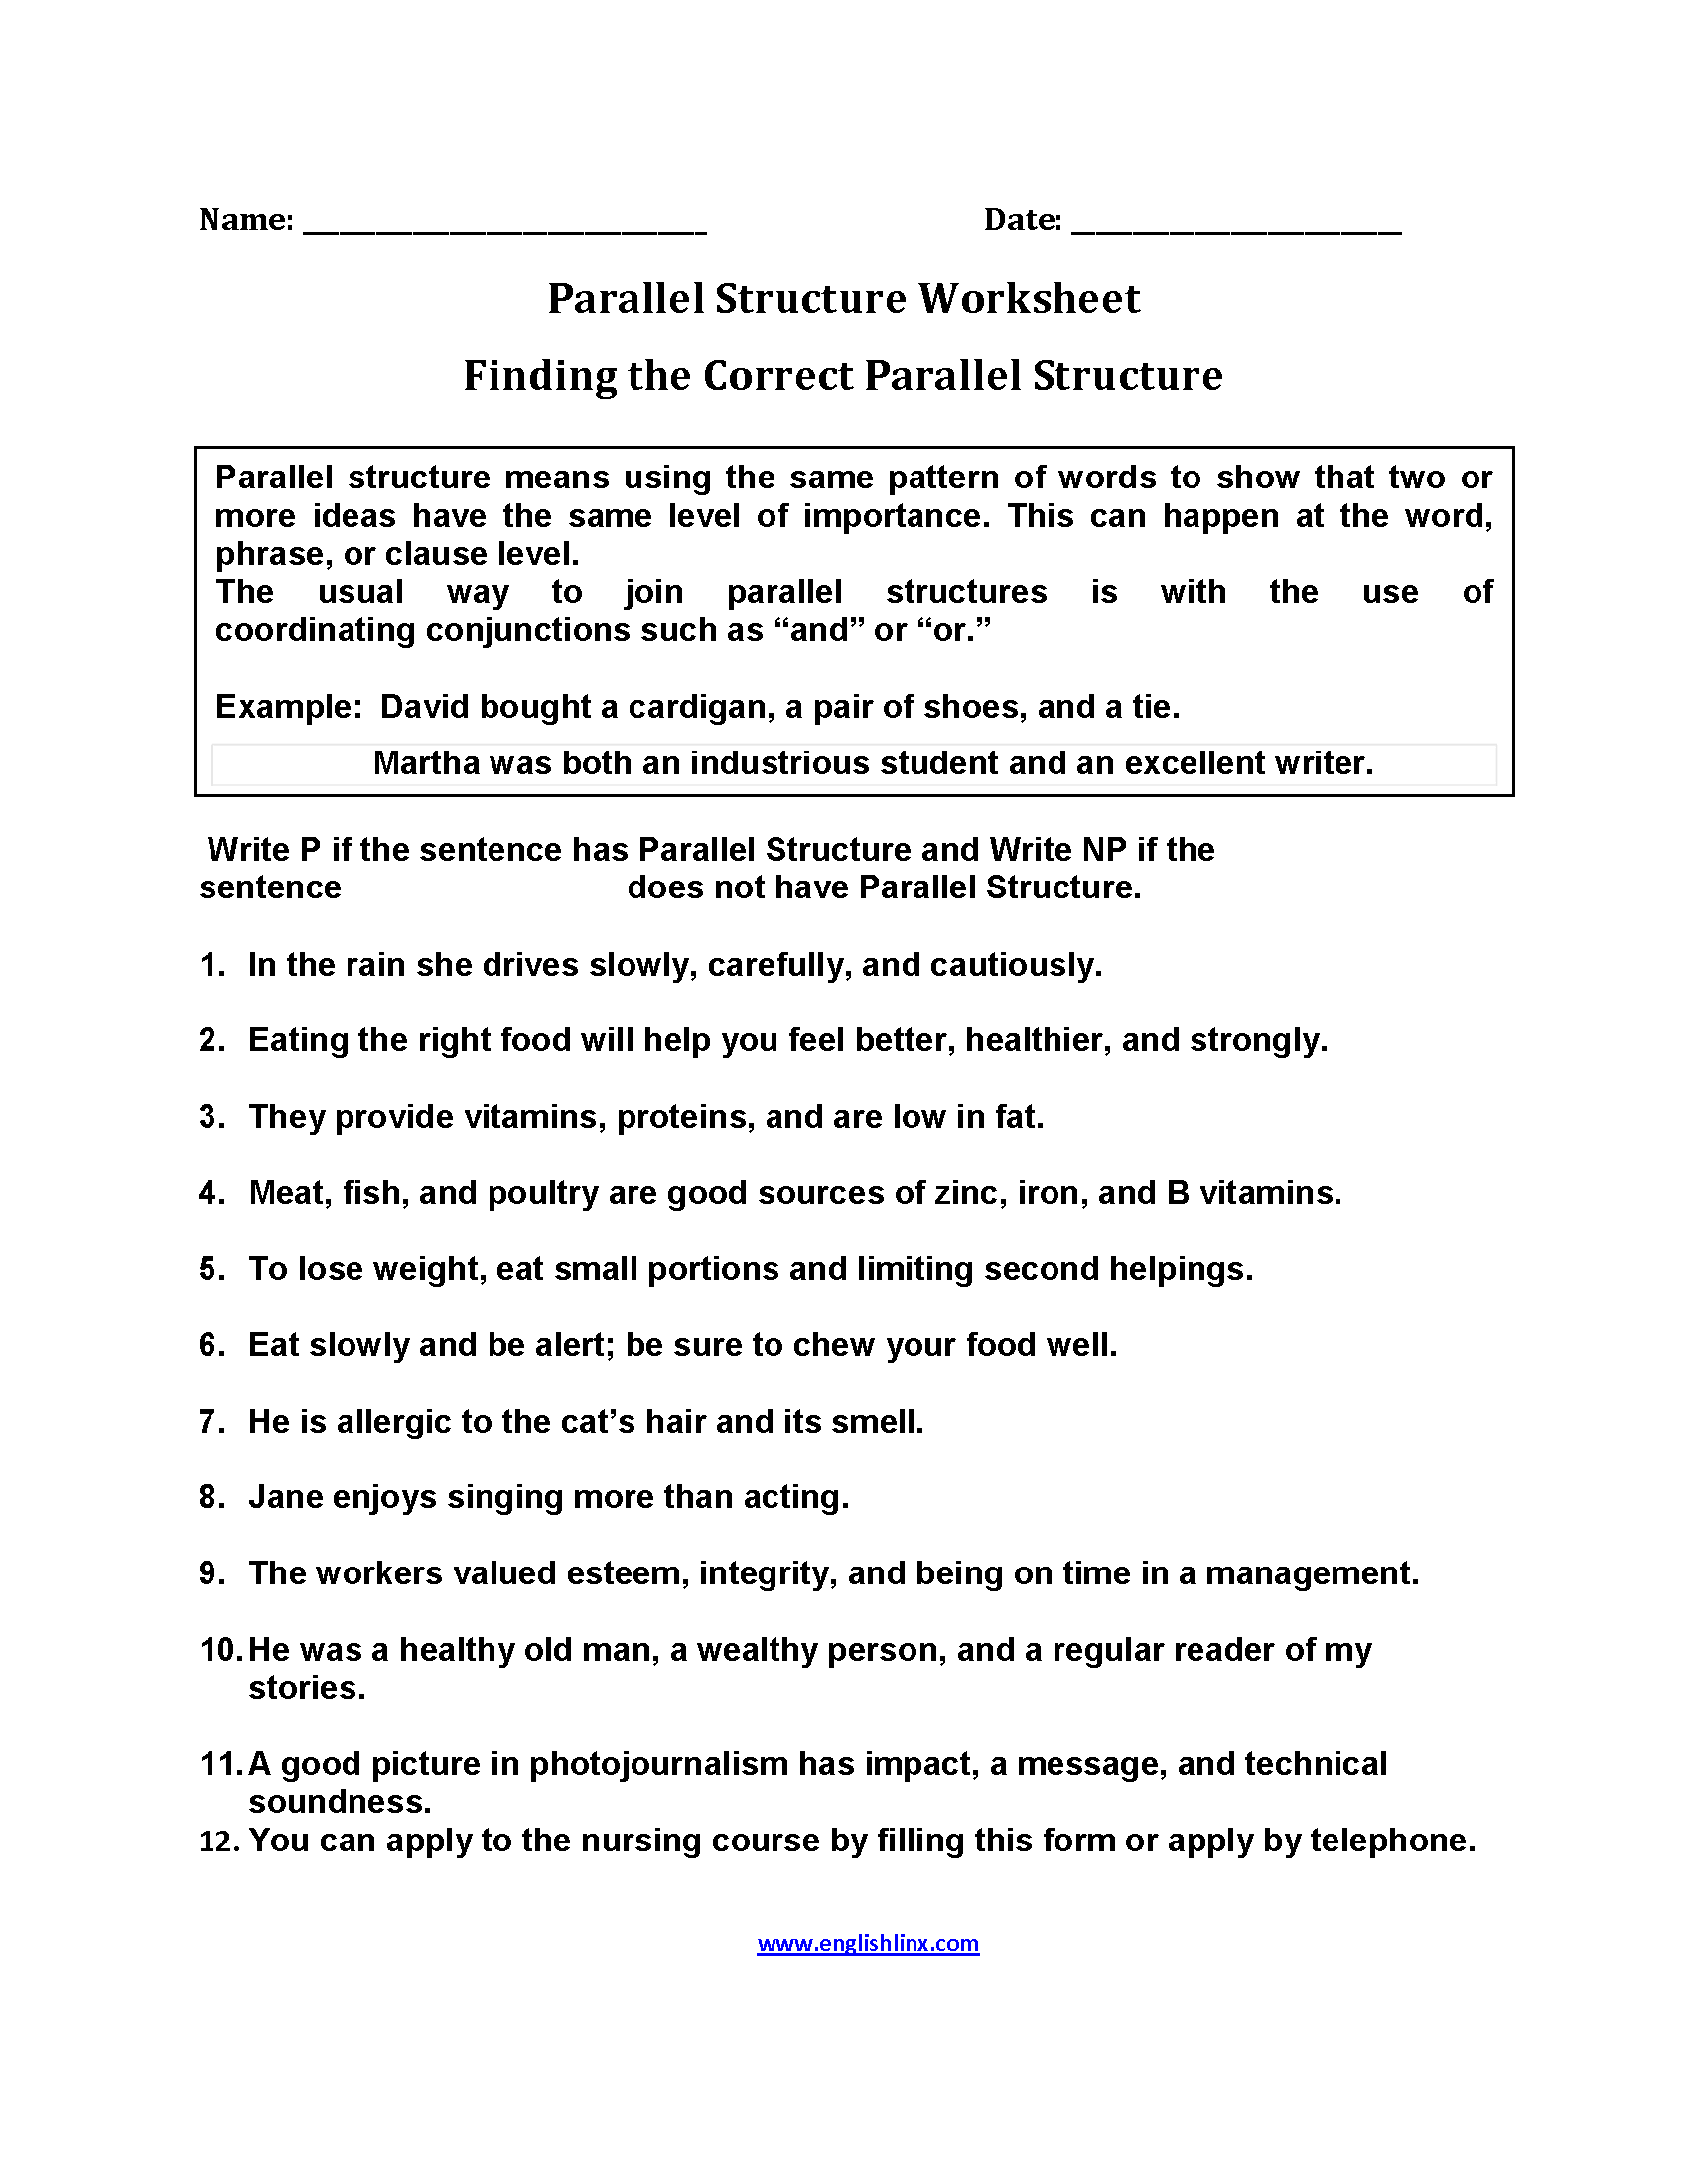 Finding Parallel Structure Worksheets